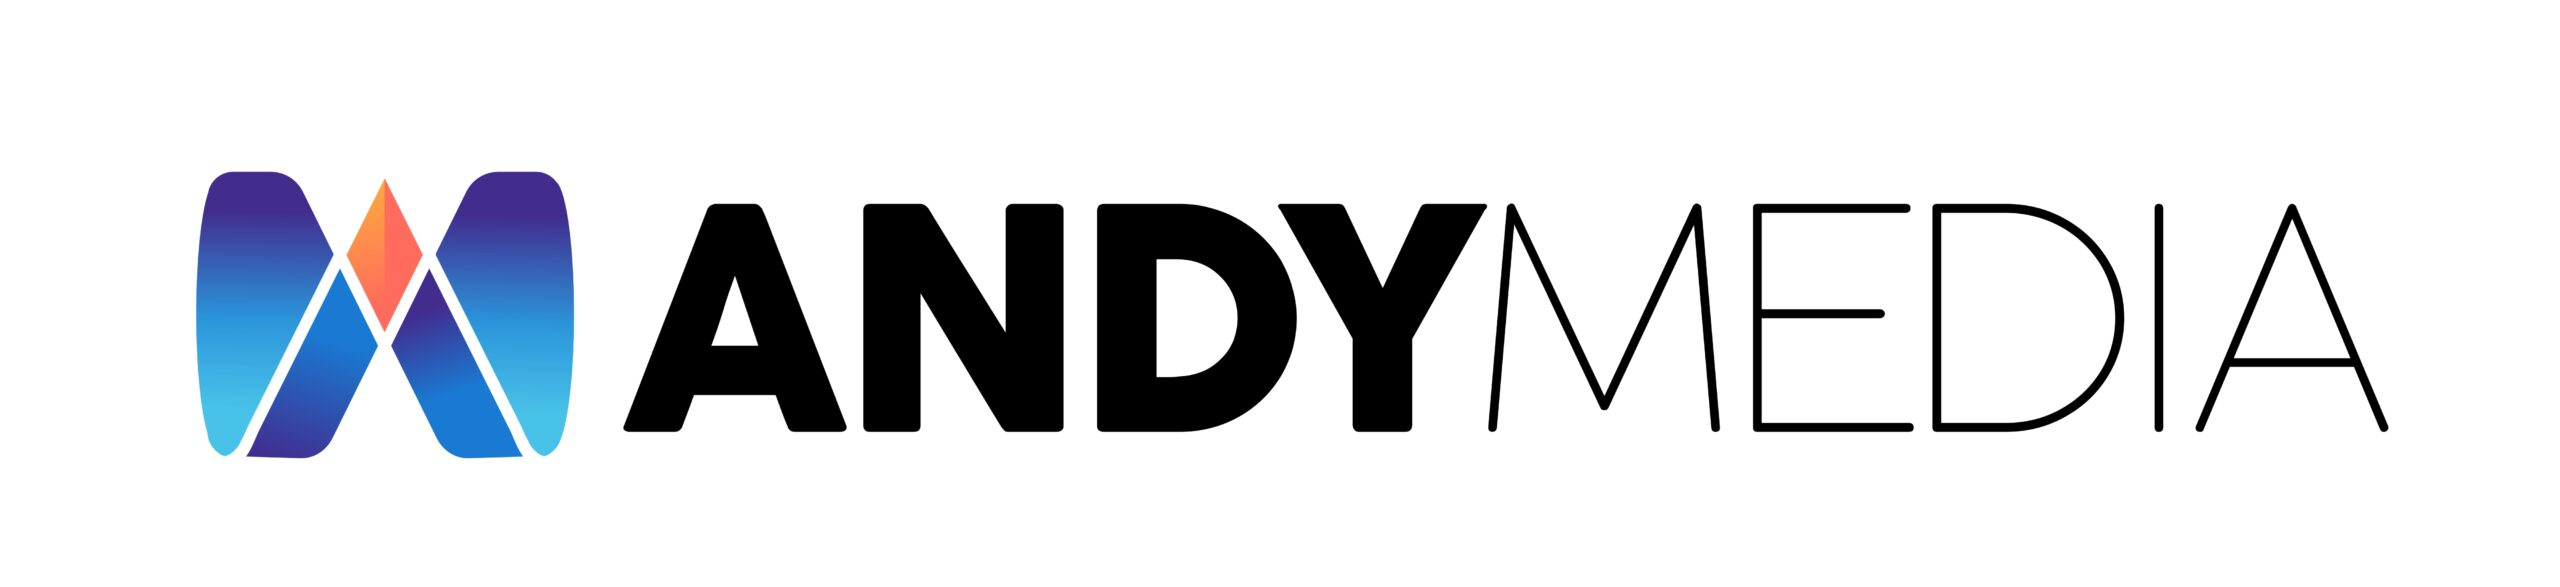 Andy.co.uk